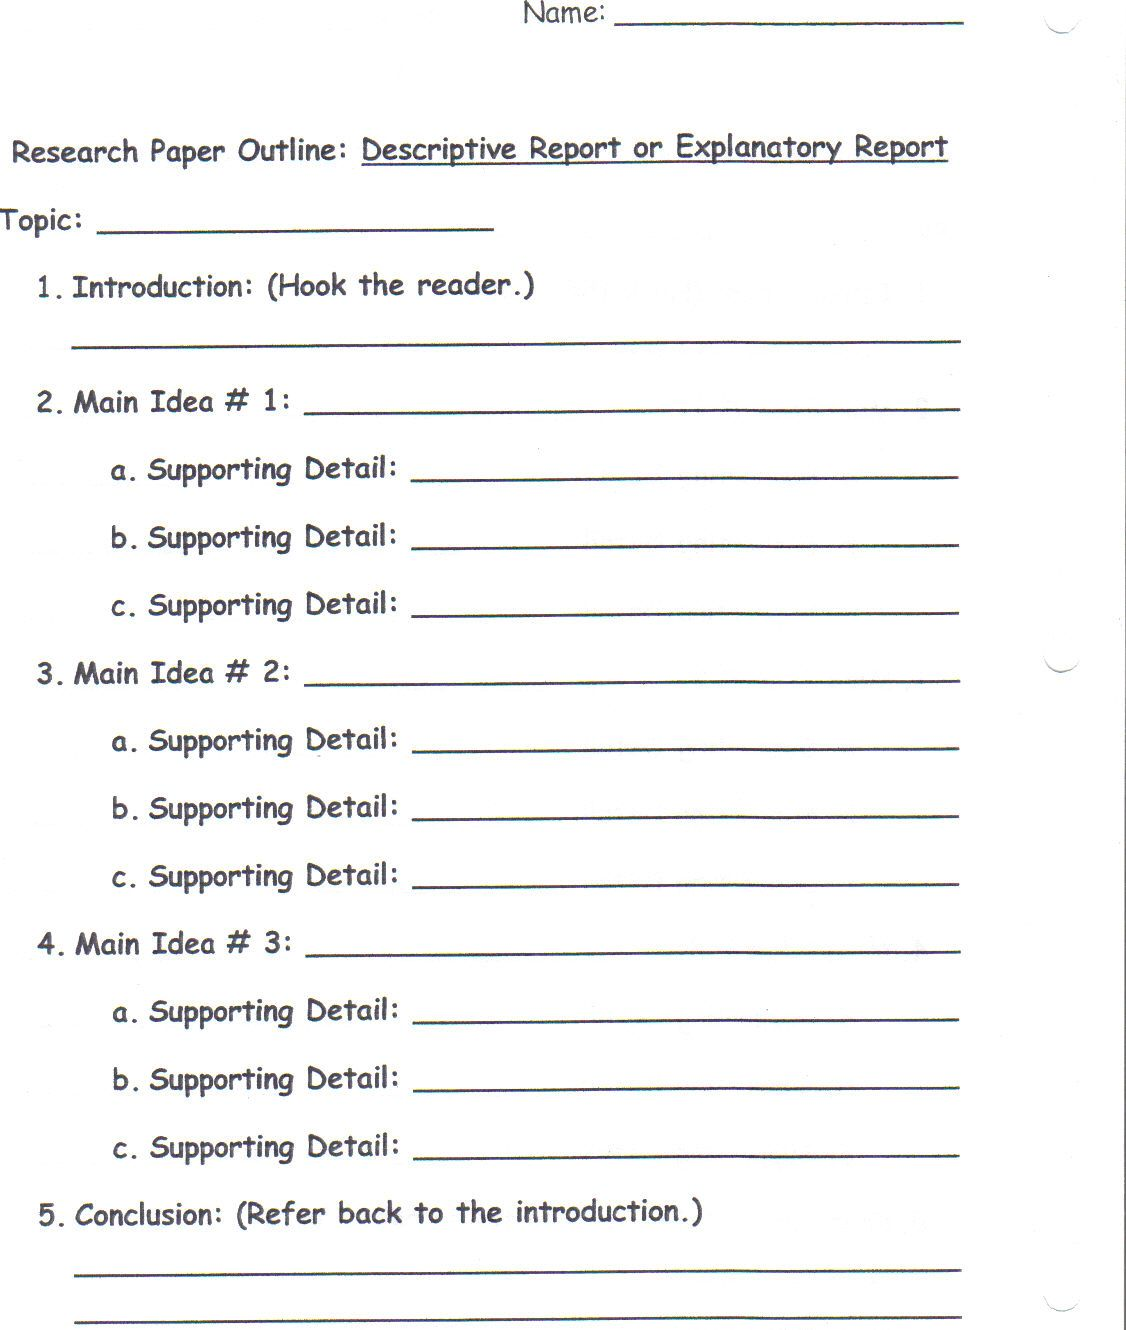 025 Research Paper Topic Idea Awesome Ideas 2019 Economics For Middle School Students Full